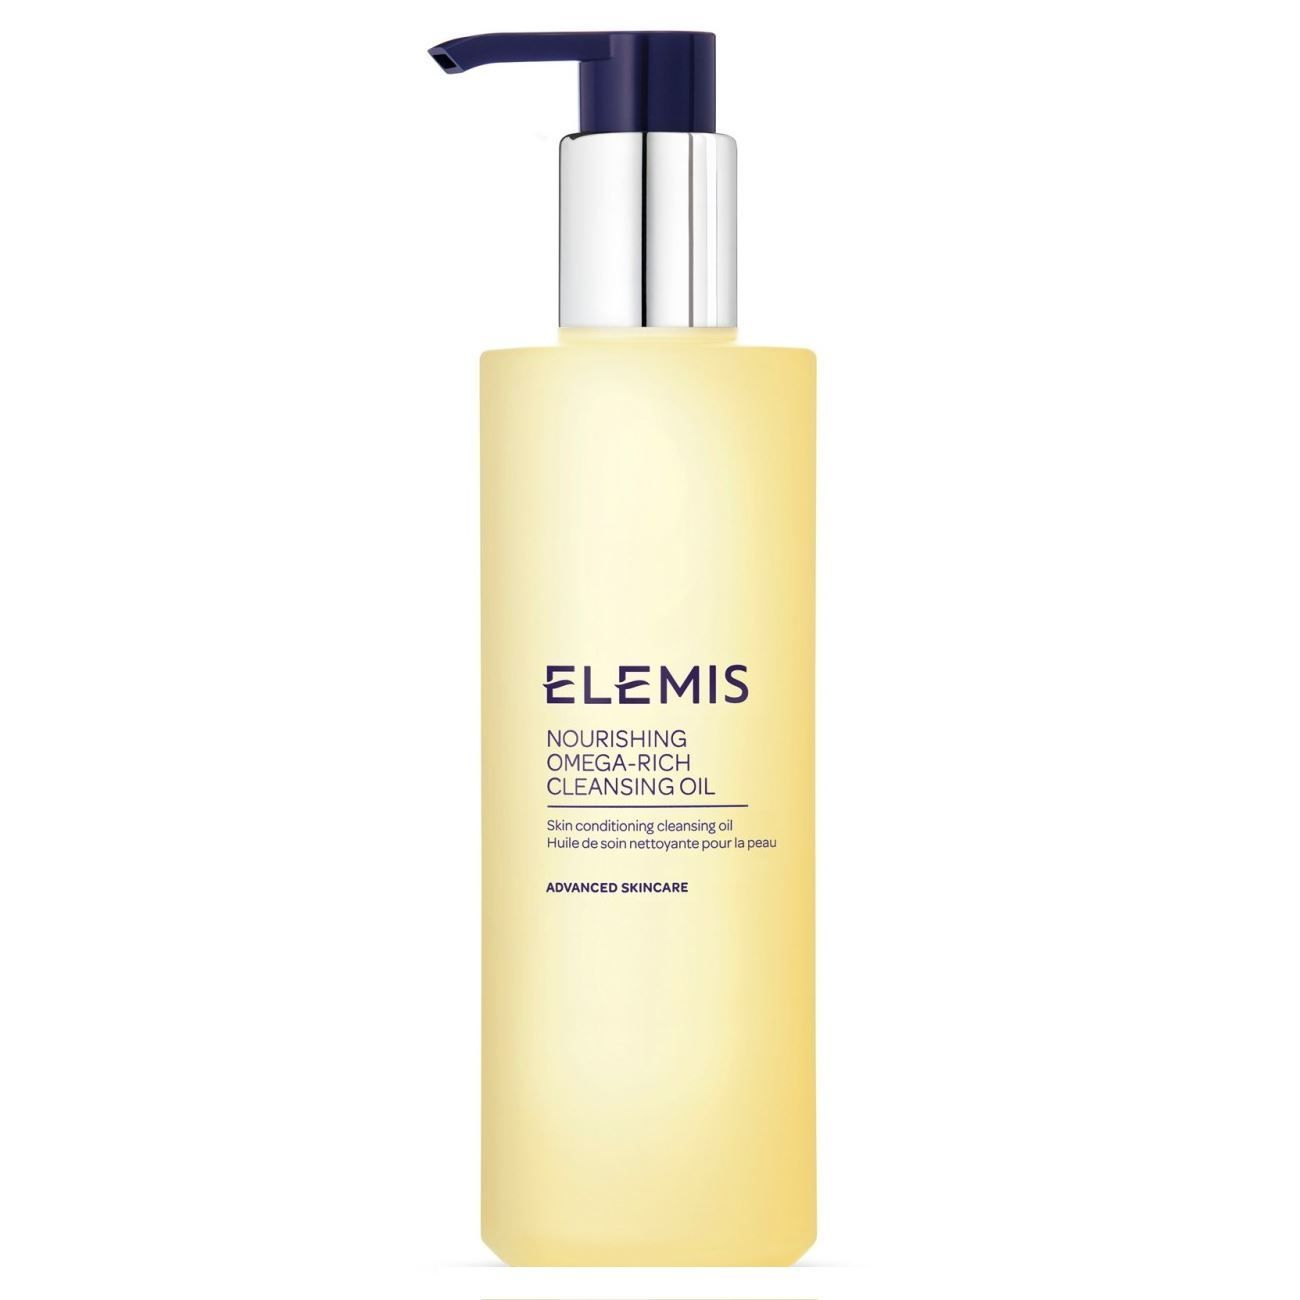 Advanced Skincare Nourishing Omega-Rich Cleansing Oil